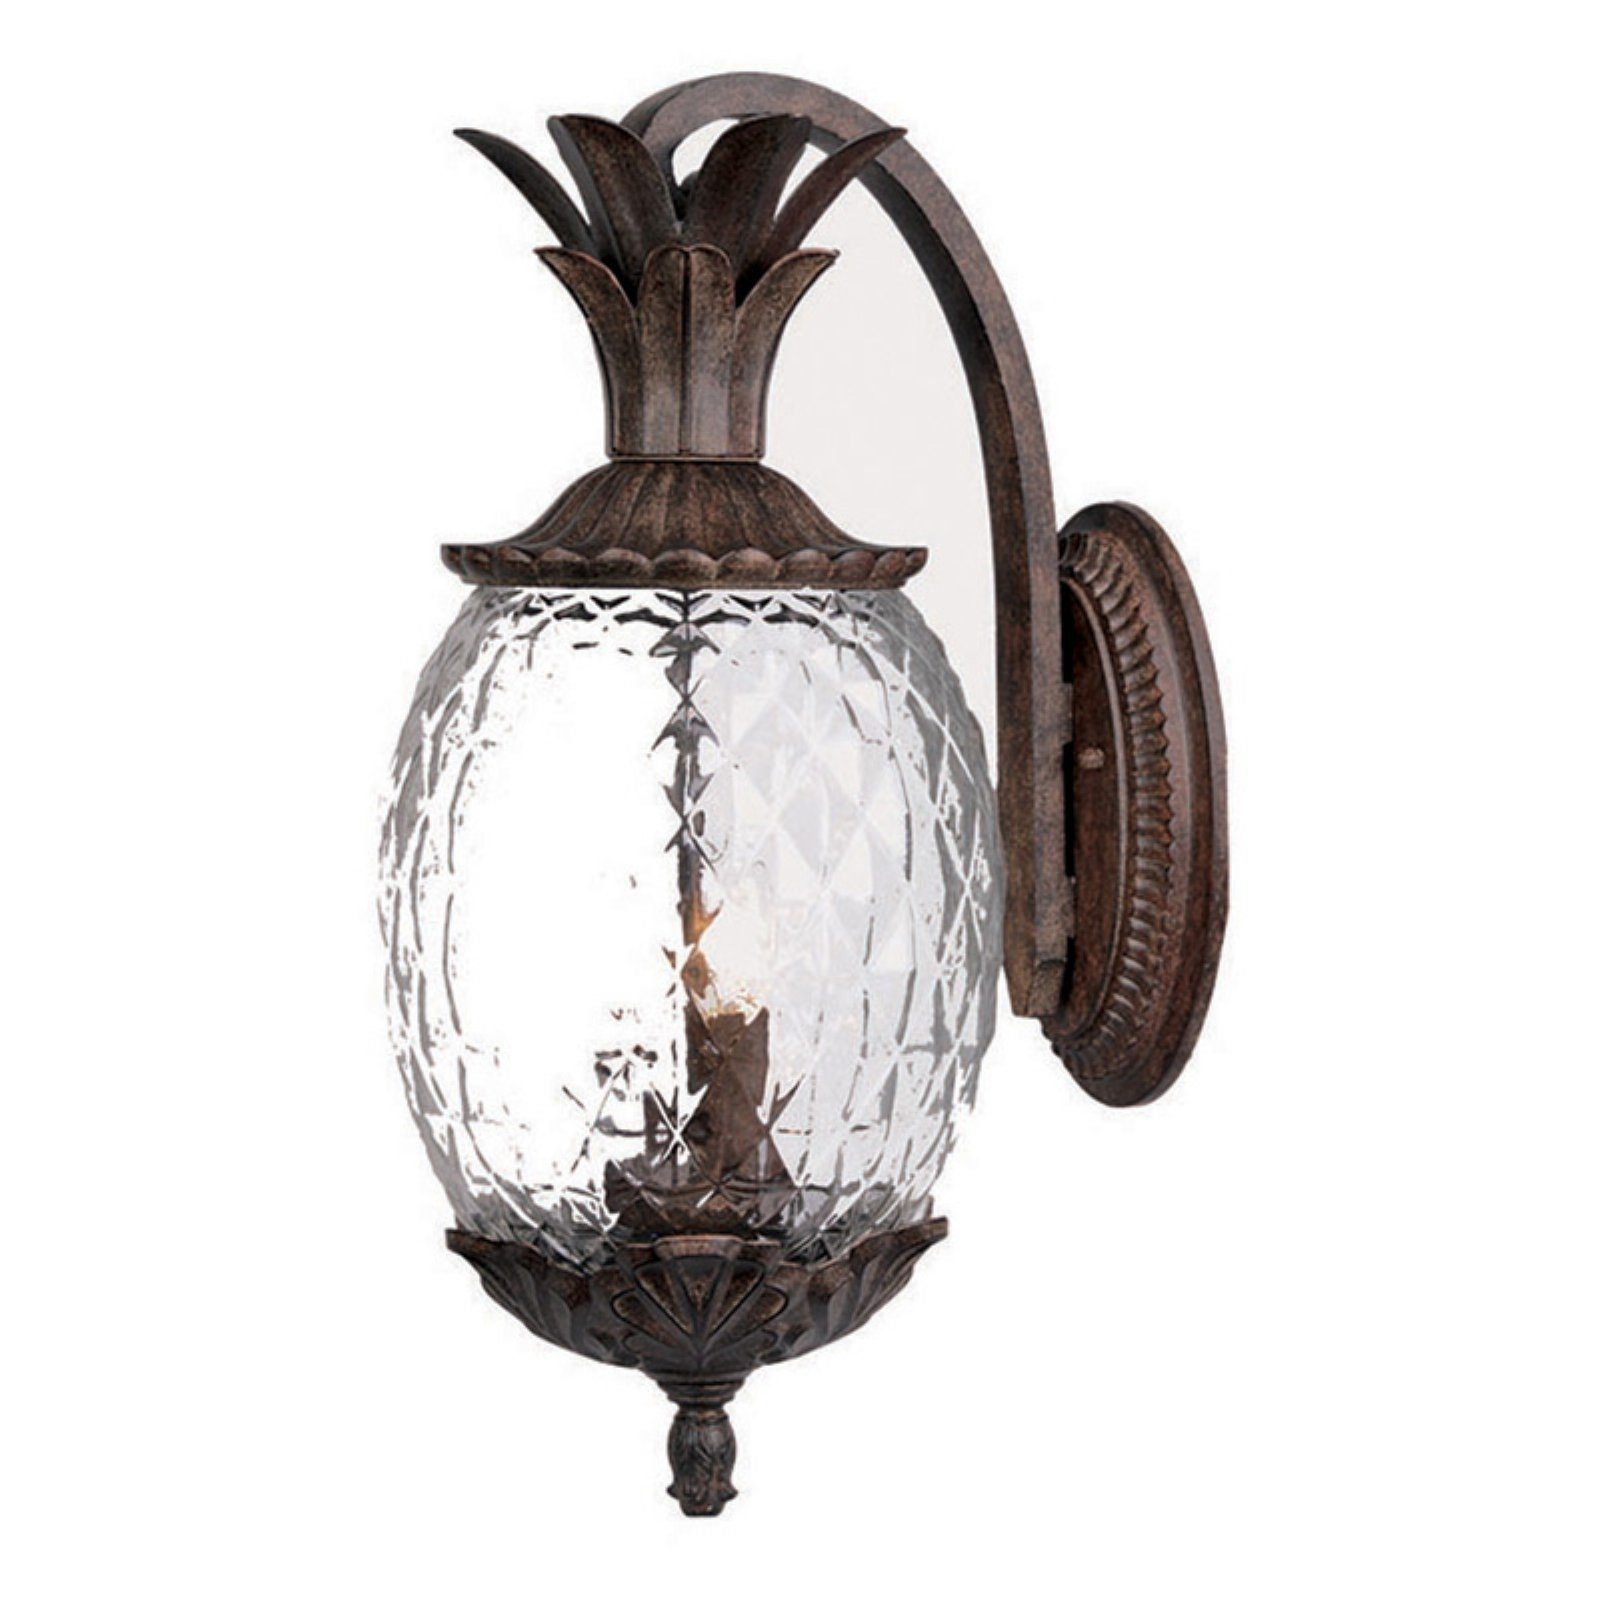 Acclaim Lighting Lanai Outdoor Wall Mount Light Fixture